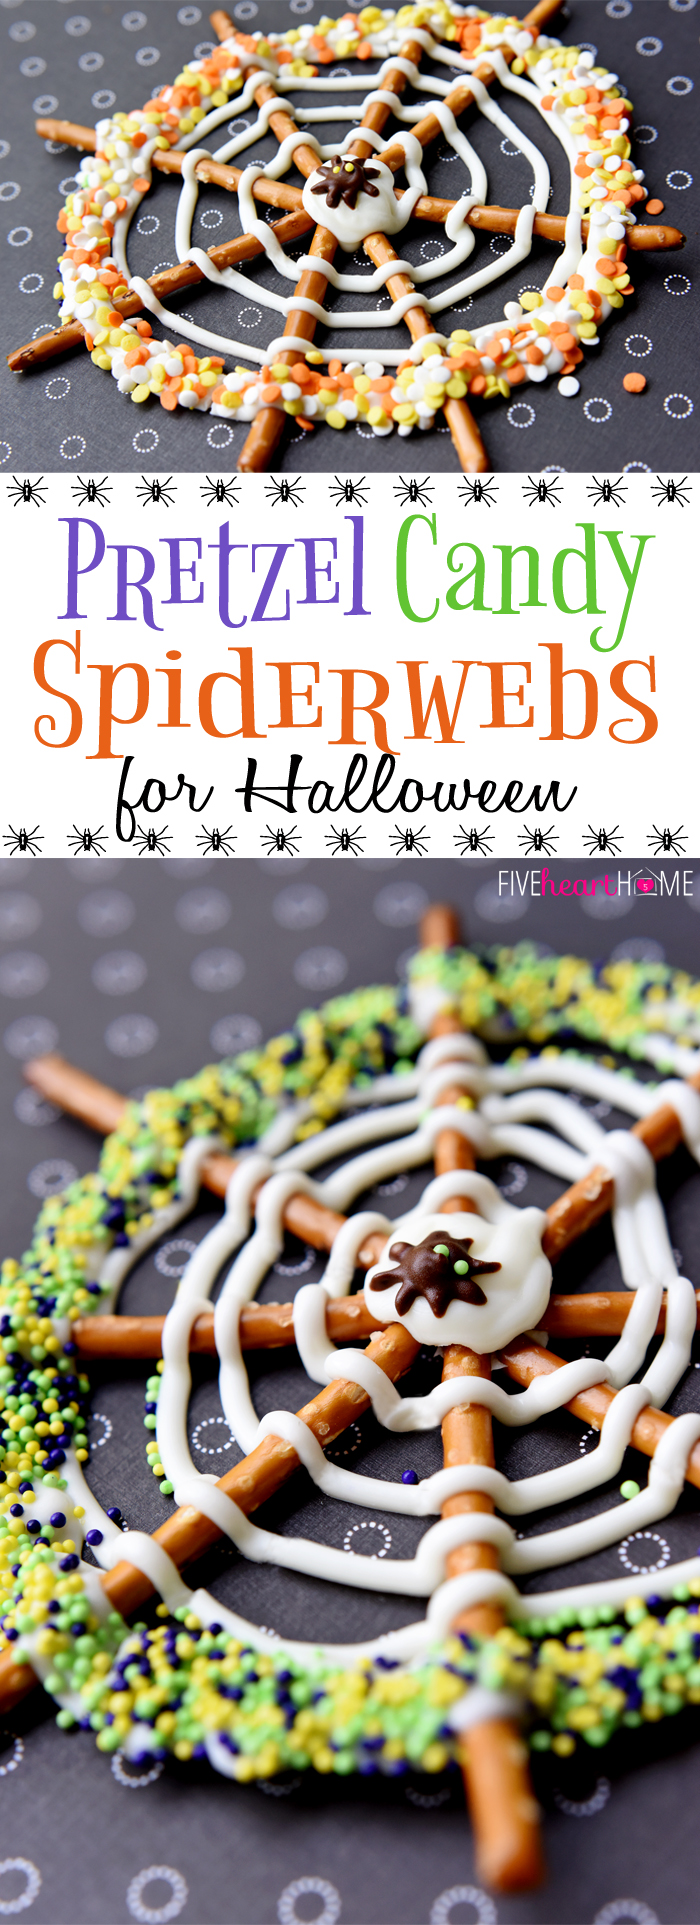 Pretzel-Candy-Spiderwebs-for-Halloween-by-Five-Heart-Home_700pxCollage